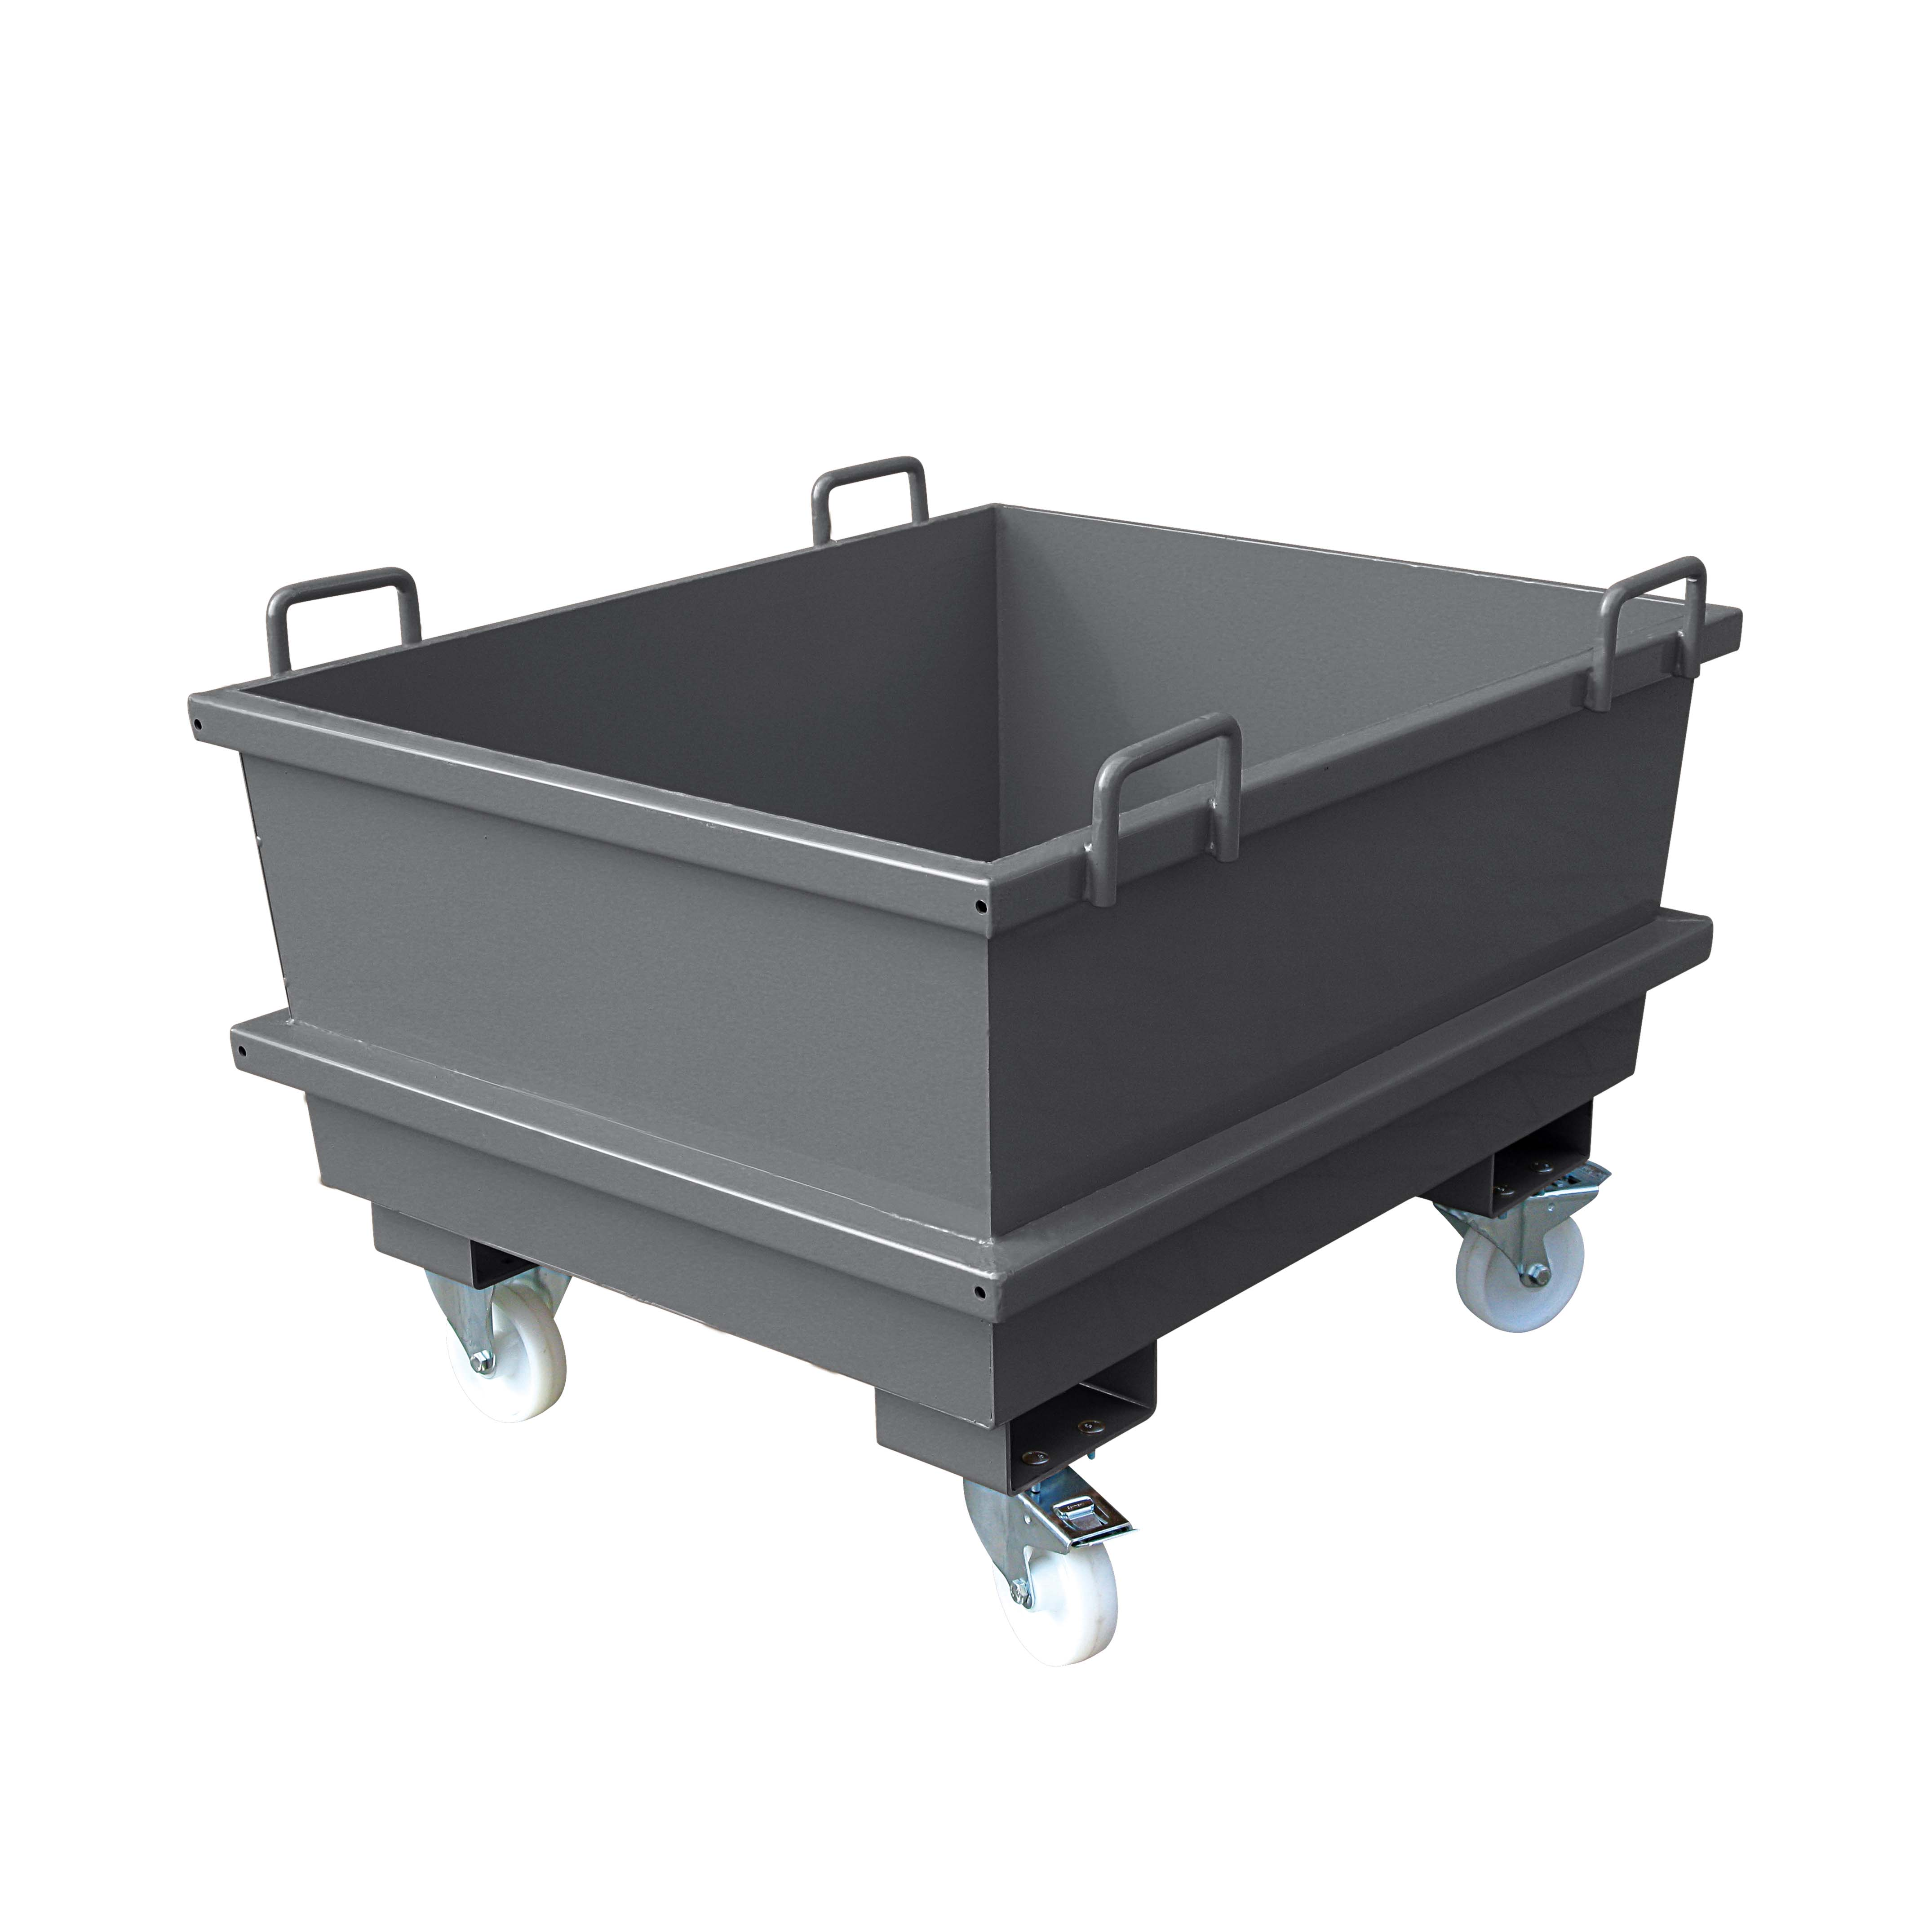 Universal-Container, 2031.4 RAL 7016